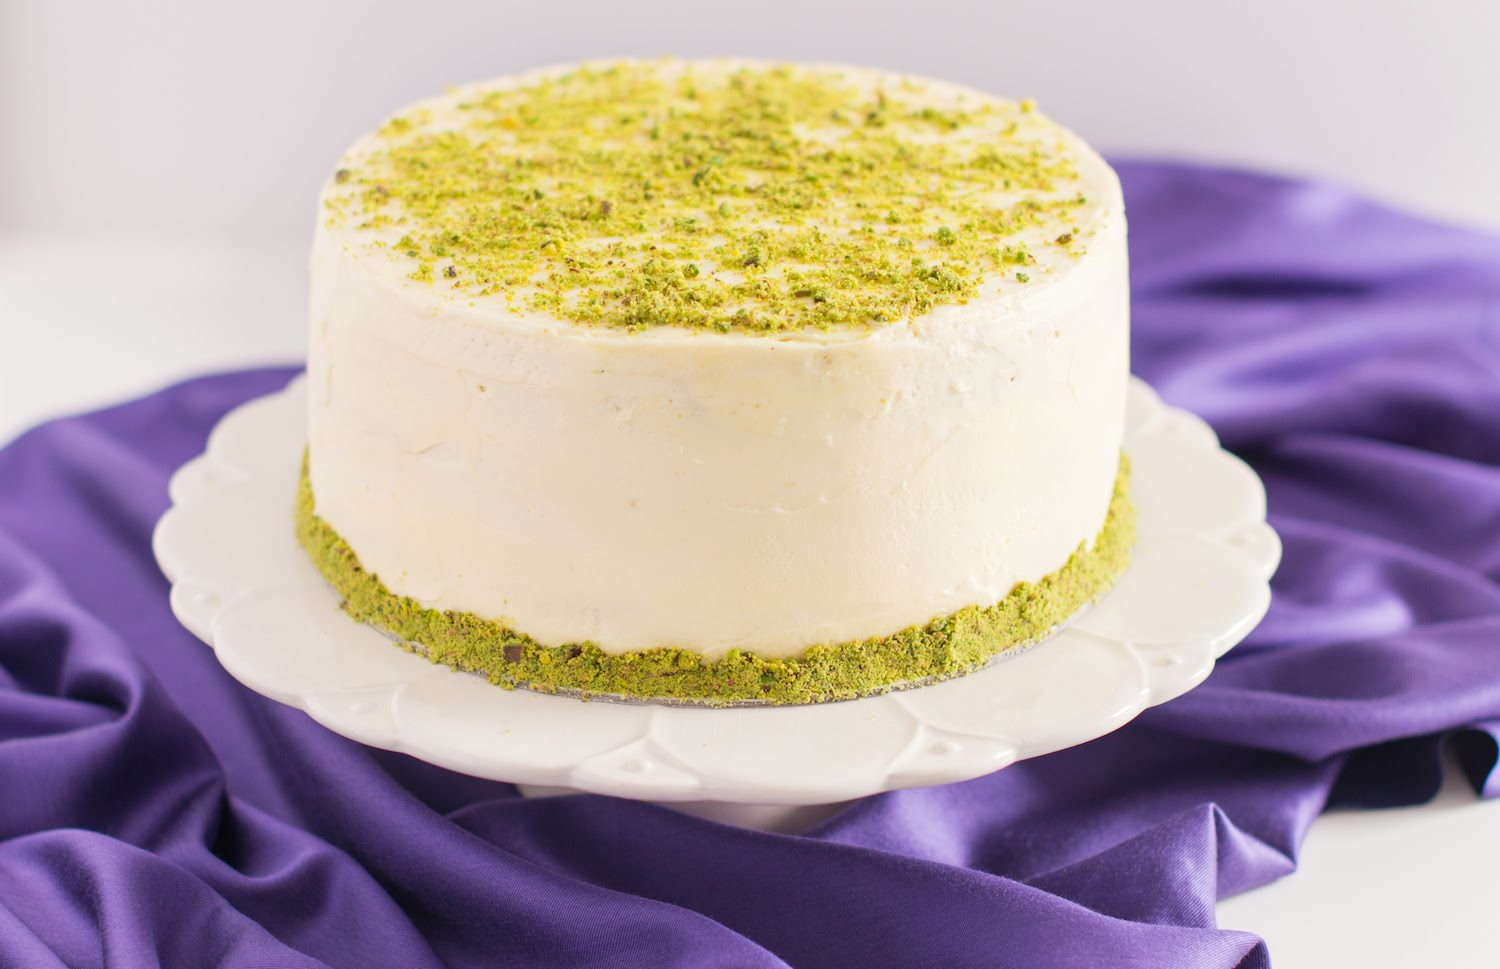 Find Out How She Changes It Up With This Pistachio Cake